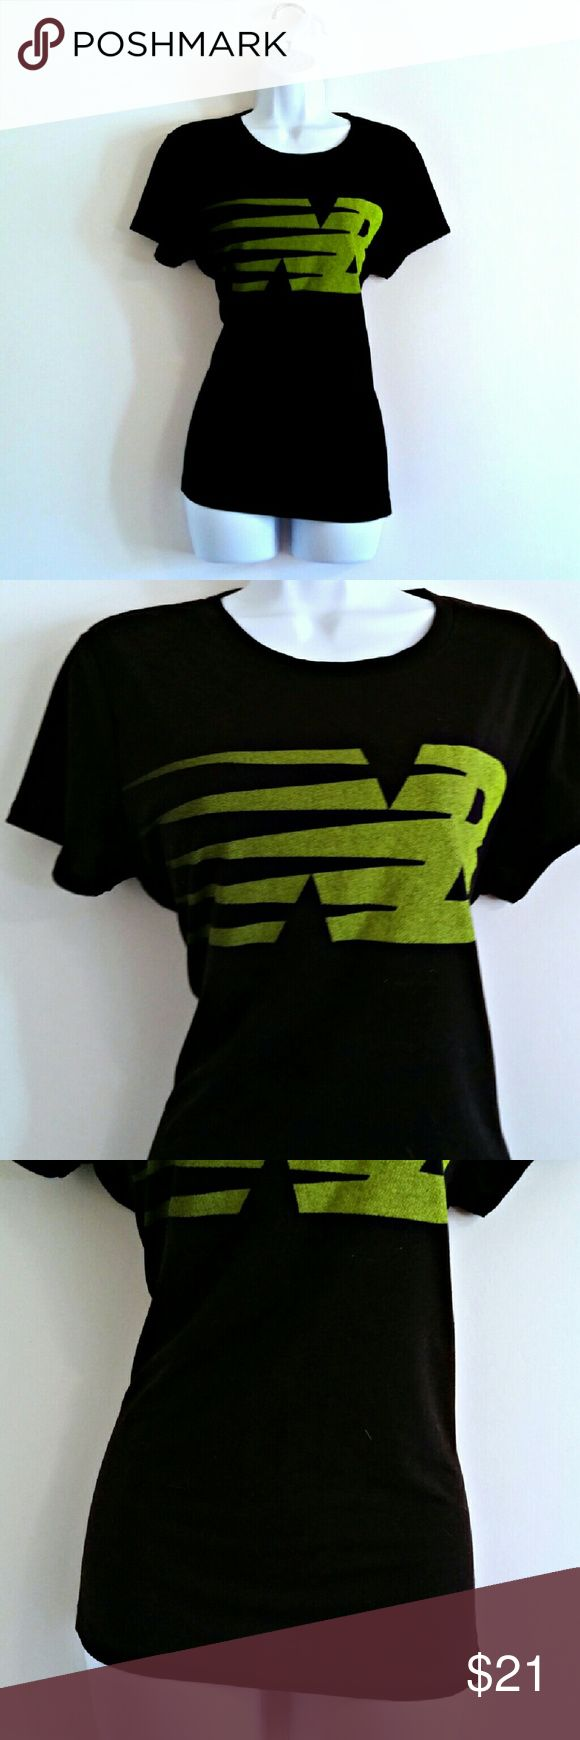 """New Balance Black and Lime Tee - Size L Perfect flattering active tee by New Balance. Trademark NB logo. Breathable and lightweight. In great condition. The perfect throw-on-and-go workout top!  Bust - 39"""" Waist - 38"""" Length - 26"""" Label - New Balance Size - L (PLEASE CHECK MEASUREMENTS)  Color may vary slightly.  #newbalance #nb #workouttop #workoutshirt #exercisetop #exerciseshirt #exercisetee #exerciseteeshirt #workouttee #workoutteeshirt #tshirt #exercisetshirt #activewear…"""